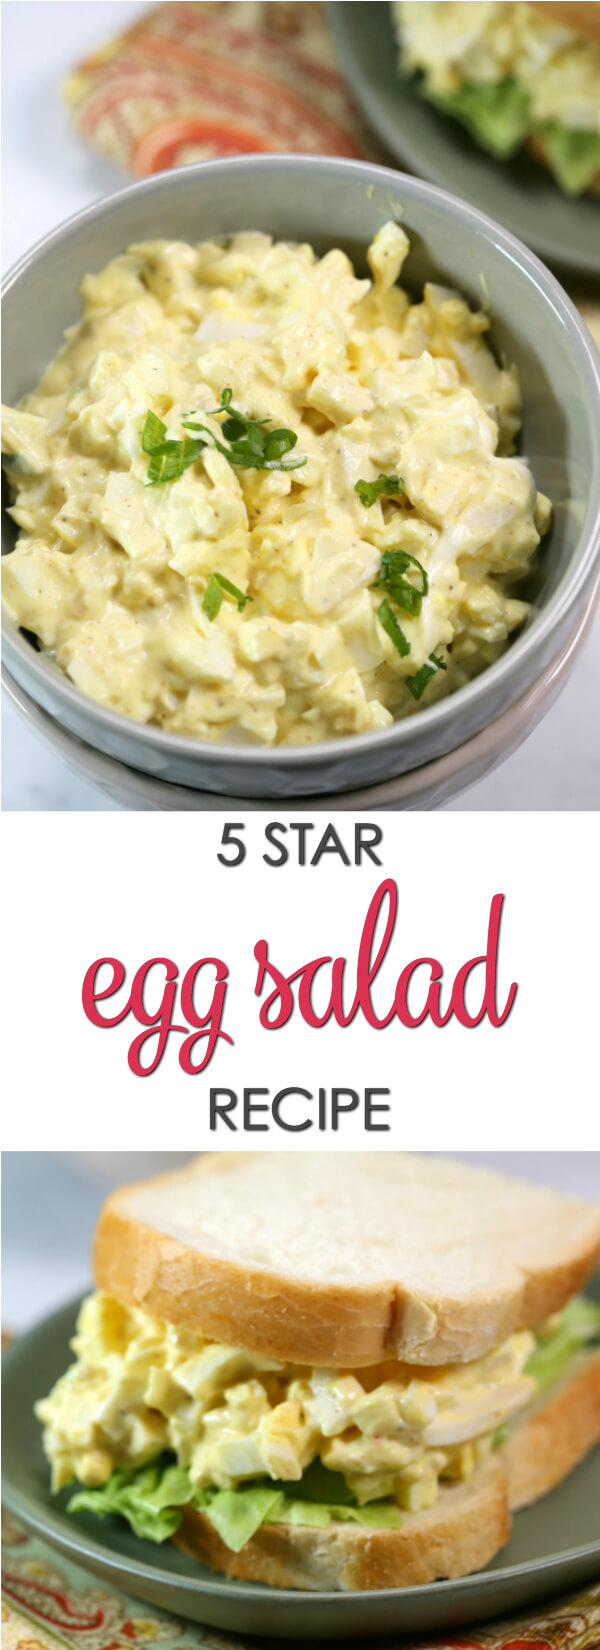 This old fashioned Egg Salad recipe is a classic recipe passed down from my grandmother. It's flavorful and creamy and makes the perfect sandwich. This is an easy basic egg salad recipe that every home cook should have. Find more recipes at www.itisakeeper.com  #itisakeeper #recipes #egg #Easter #sandwich #backtoschool #easyrecipe #classicrecipe